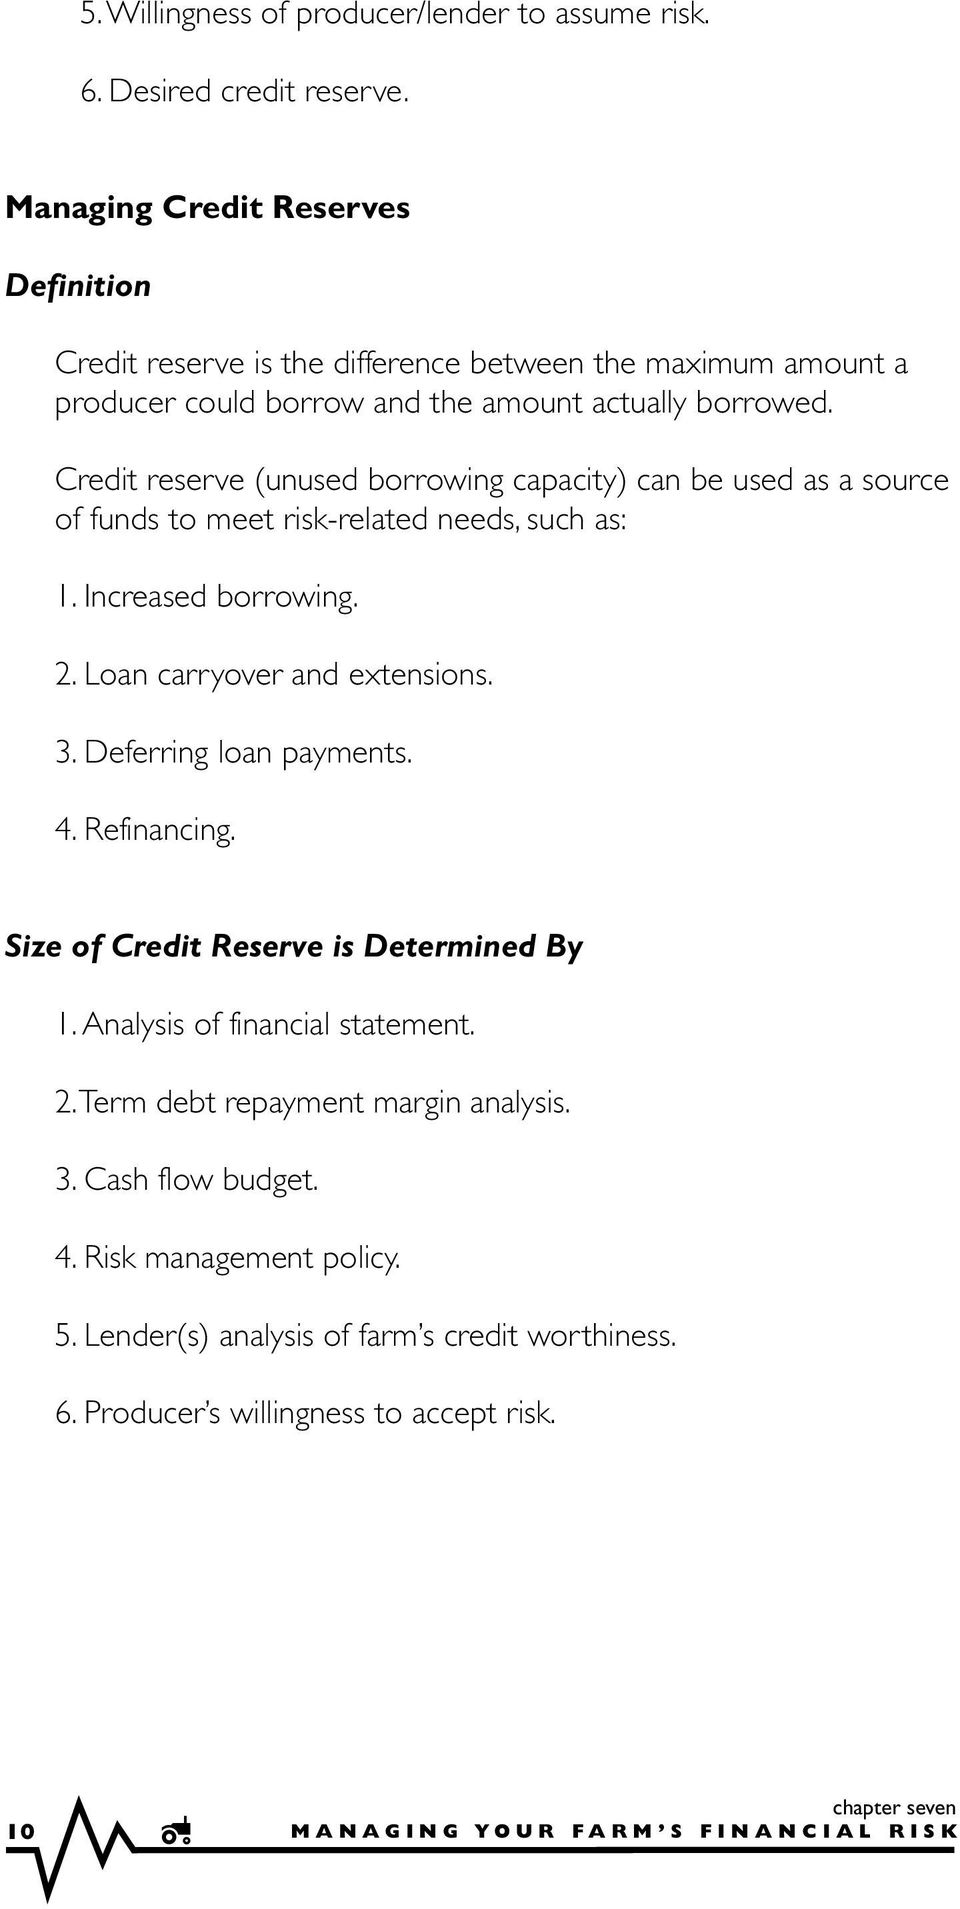 Credit reserve (unused borrowing capacity) can be used as a source of funds to meet risk-related needs, such as: 1. Increased borrowing. 2. Loan carryover and extensions. 3.